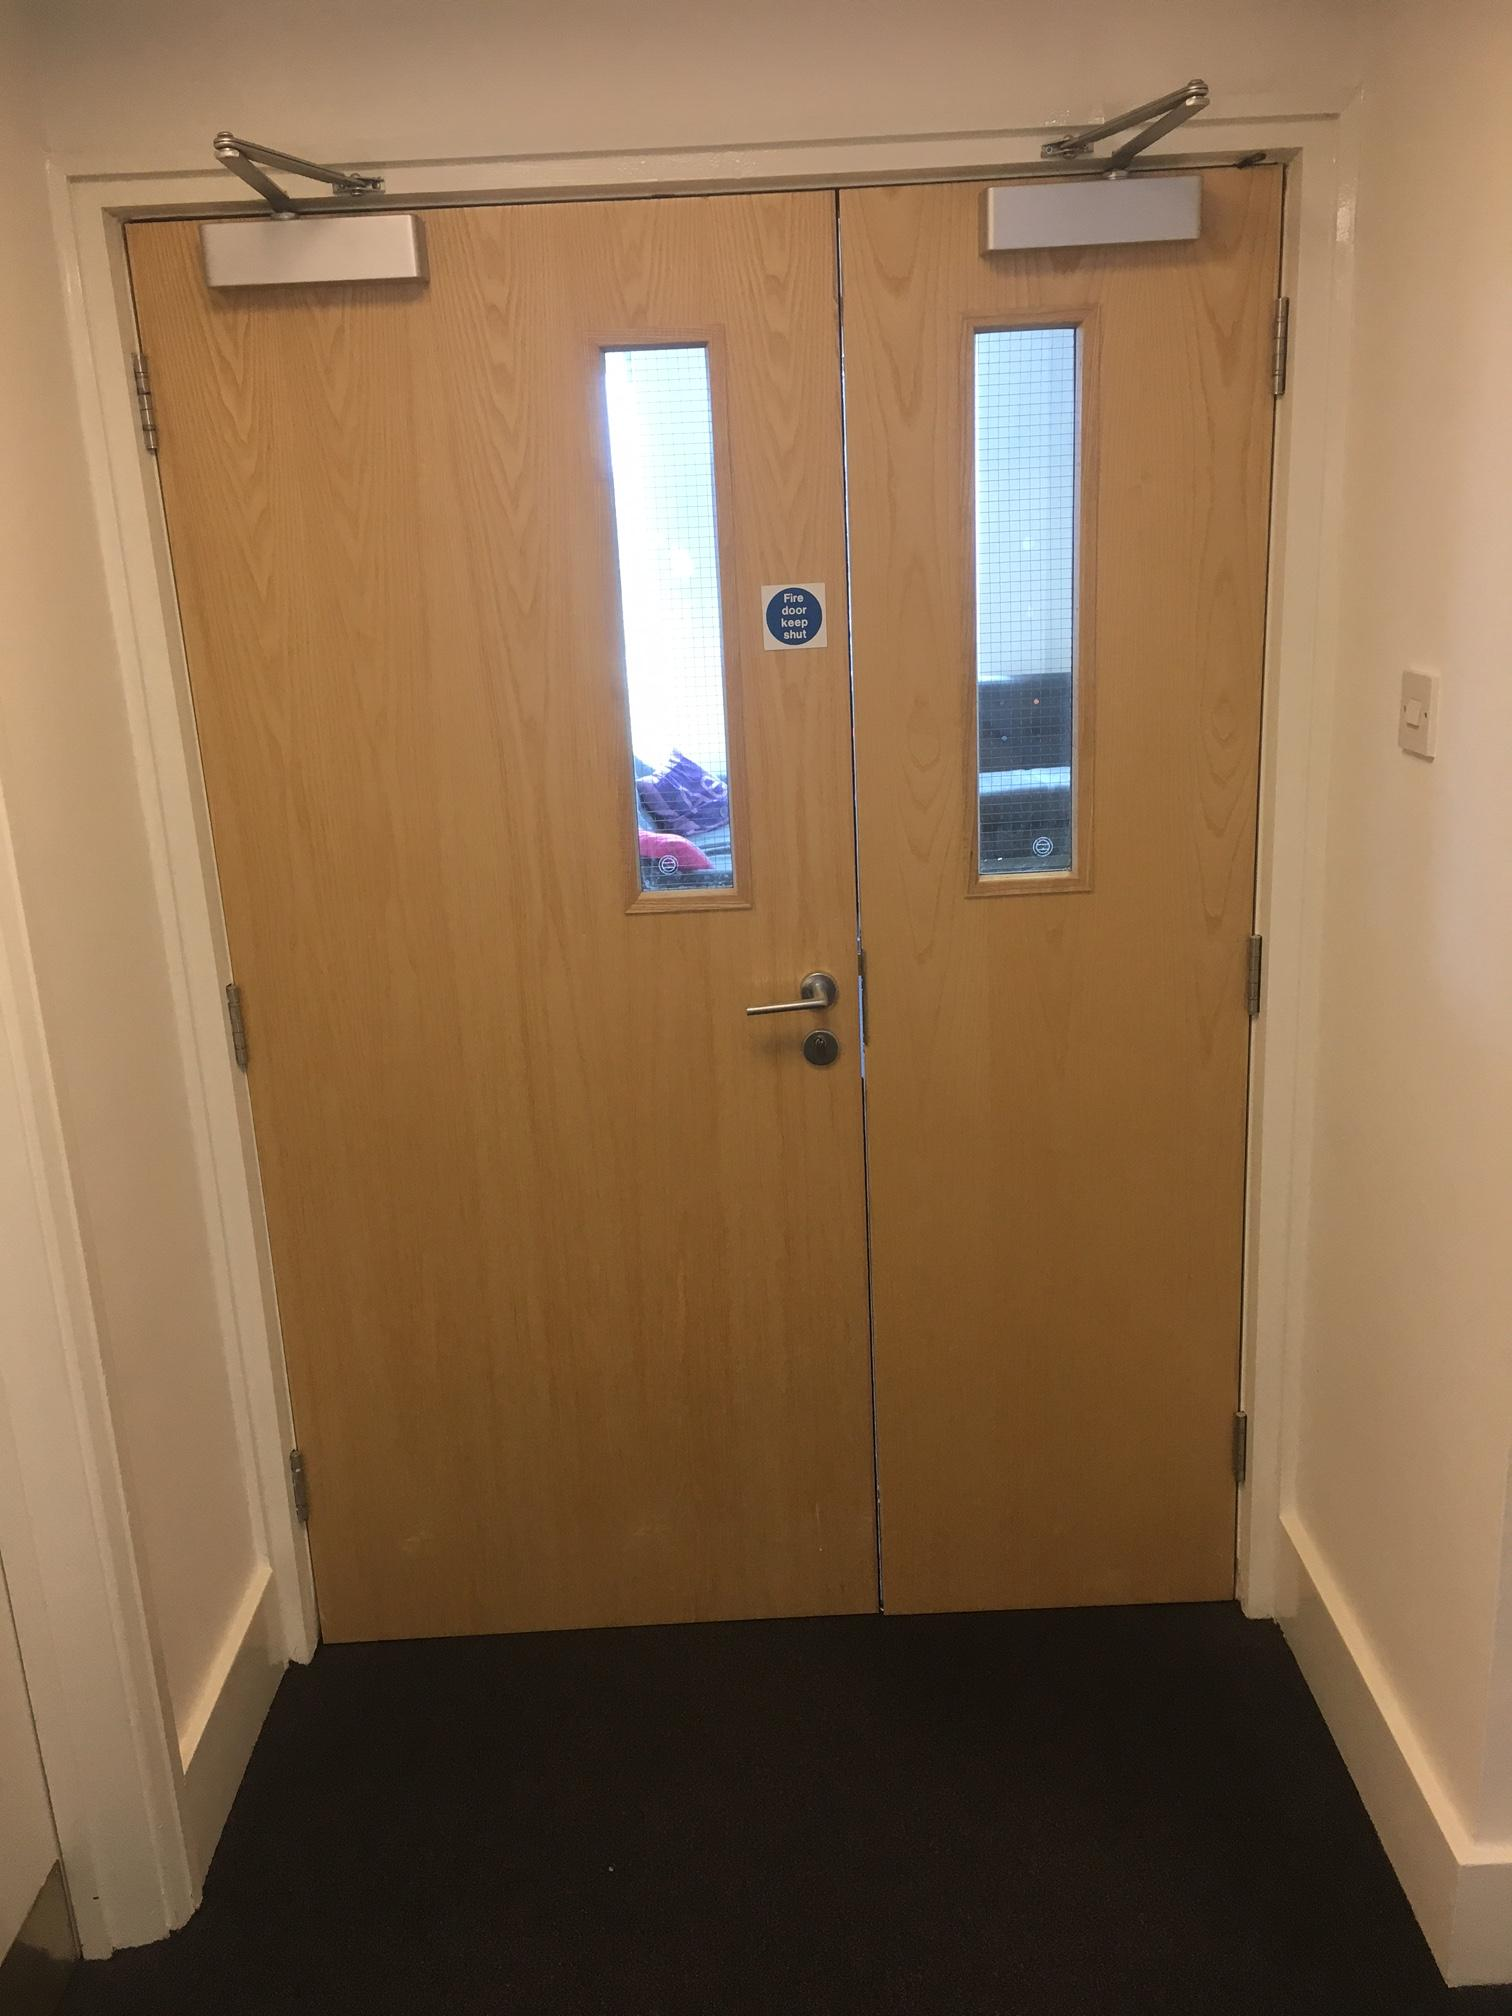 Double Door With Gap In The Middle Fire Doors And Accessories Safelincs Fire